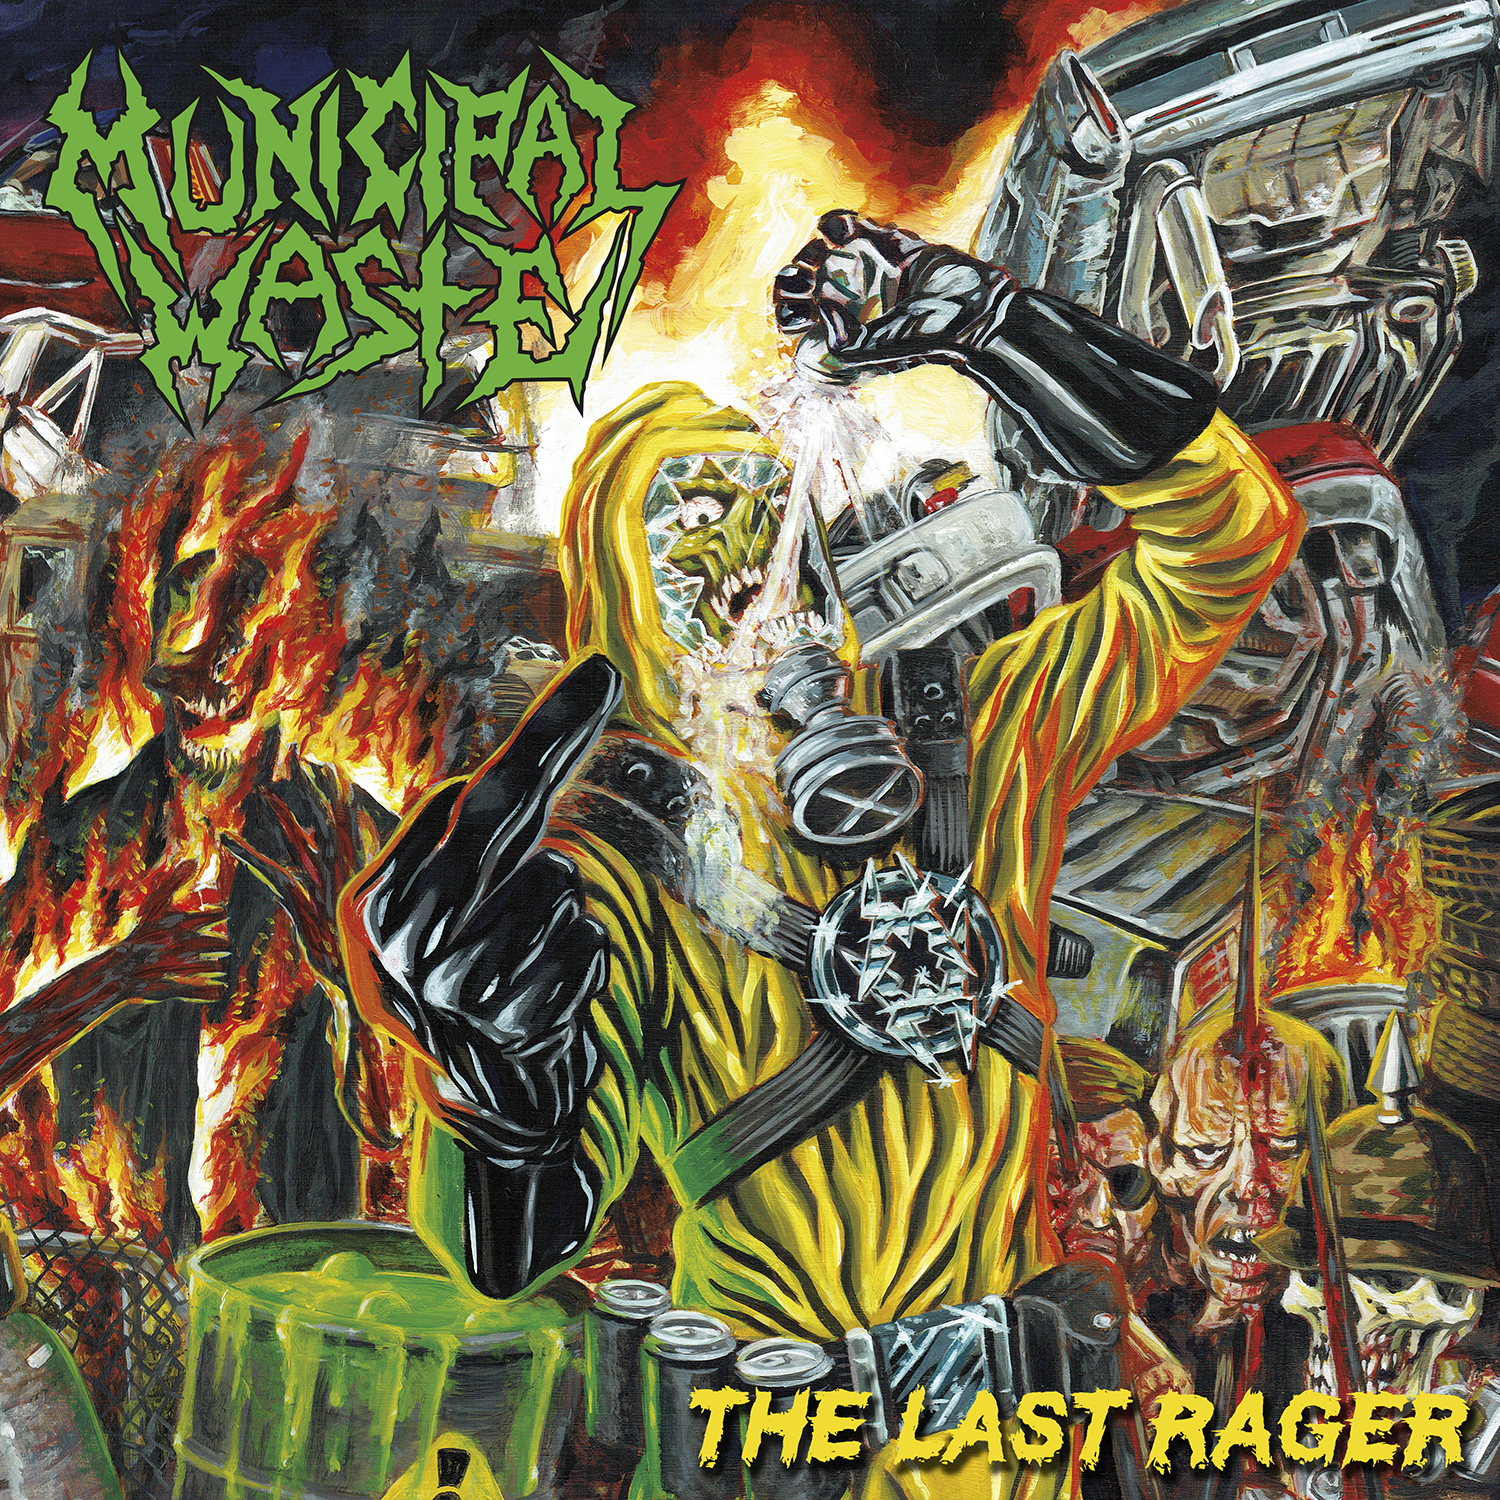 The Last Rager EP was recorded by LandPhil Hall at Blaze of Torment Studios in Richmond, VA with additional engineering completed by Josh Hall. The EP was mixed by Rob Caldwell while mastering was handled by Joel Grind. The artwork was created by Brian Crabaugh.